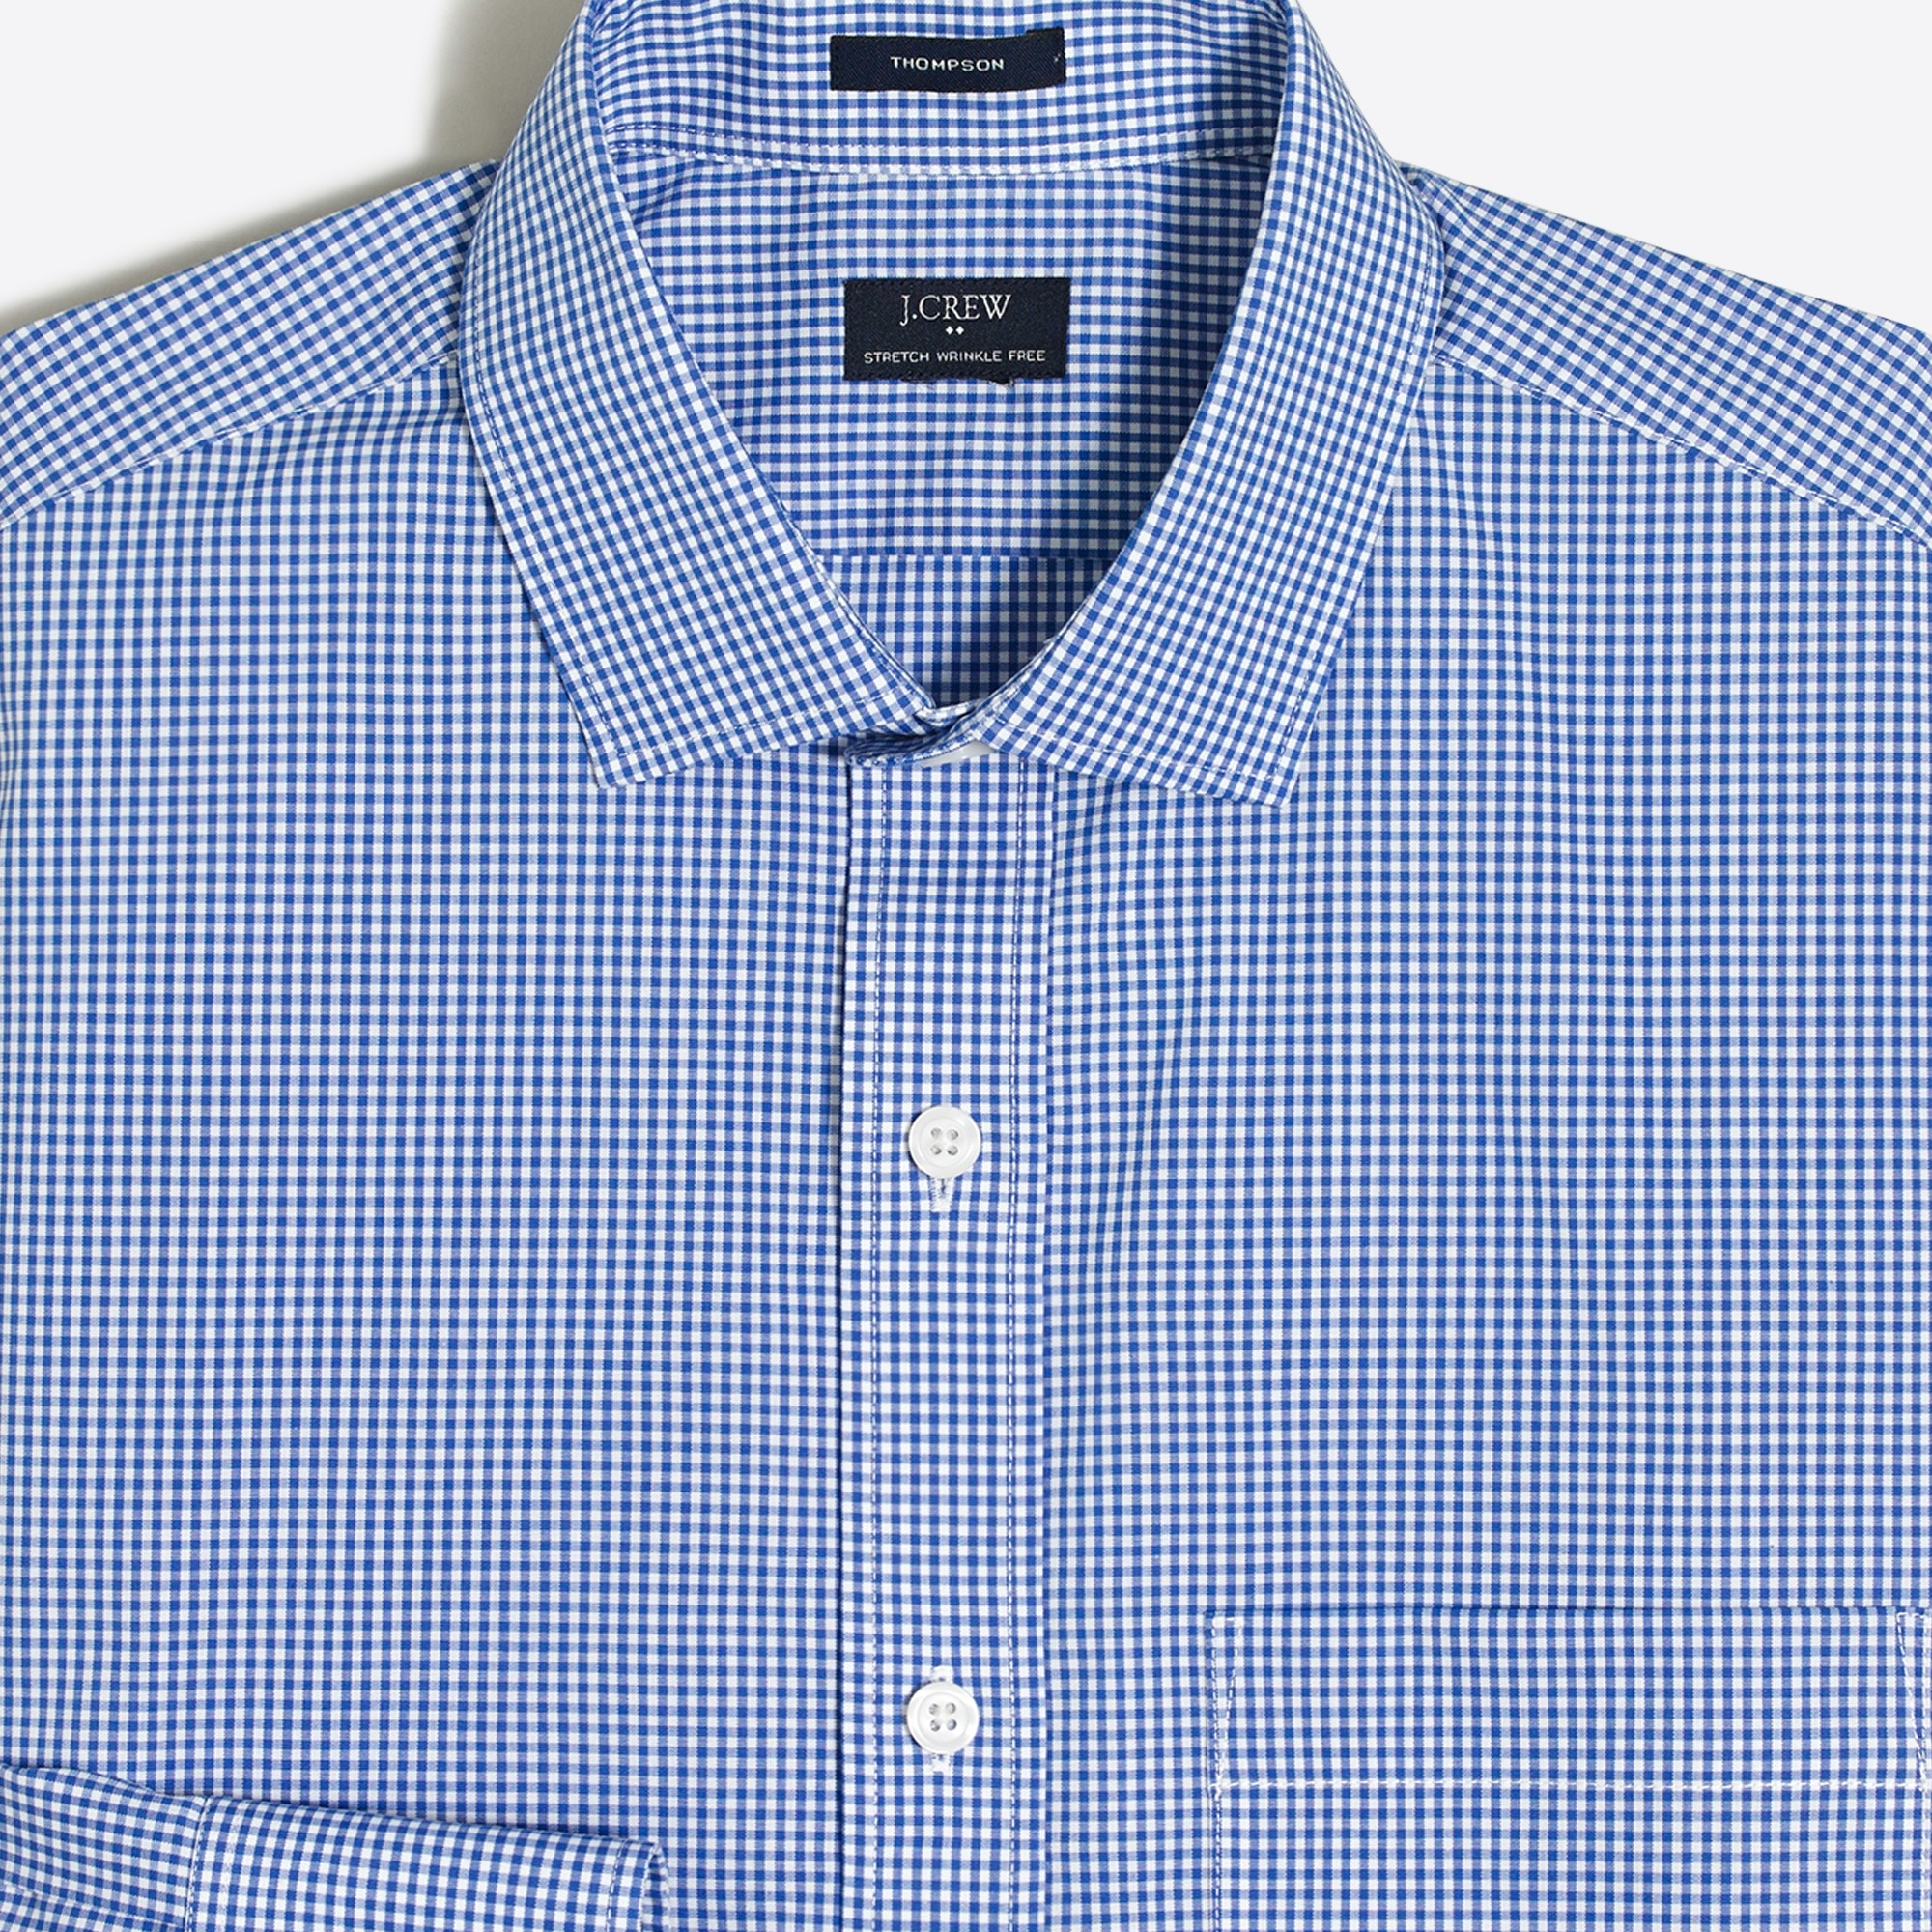 Image 2 for Mini-gingham flex wrinkle-free dress shirt